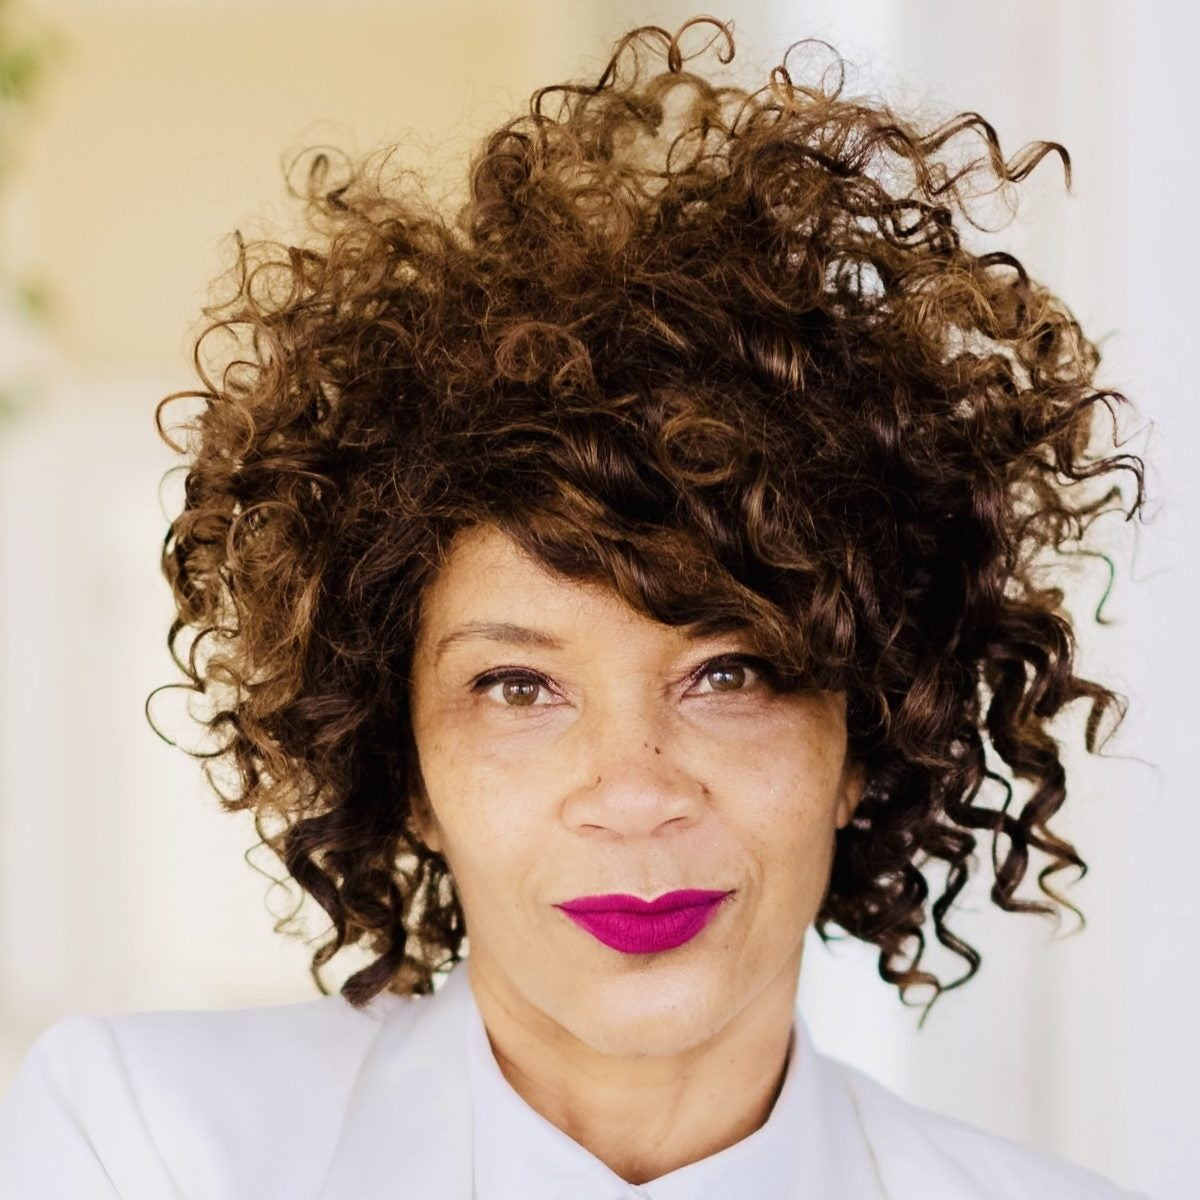 Regina Louise's New Book Reminds Black Women We Have Permission To Take Control Of Our Lives